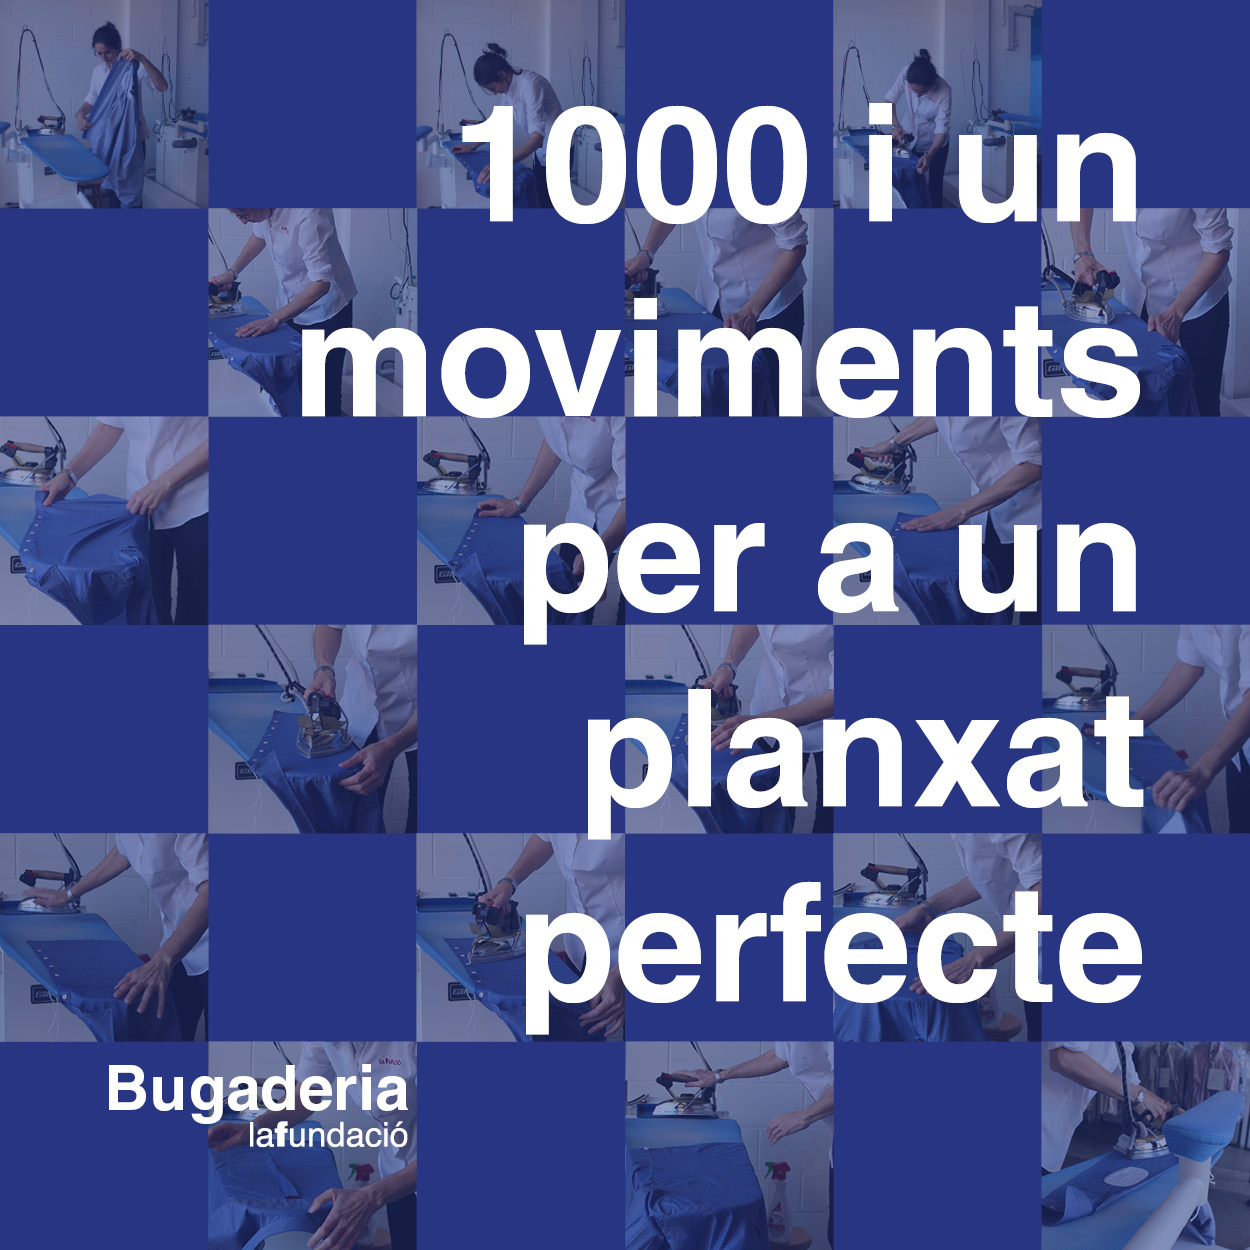 mil moviments per a un planxat perfecte